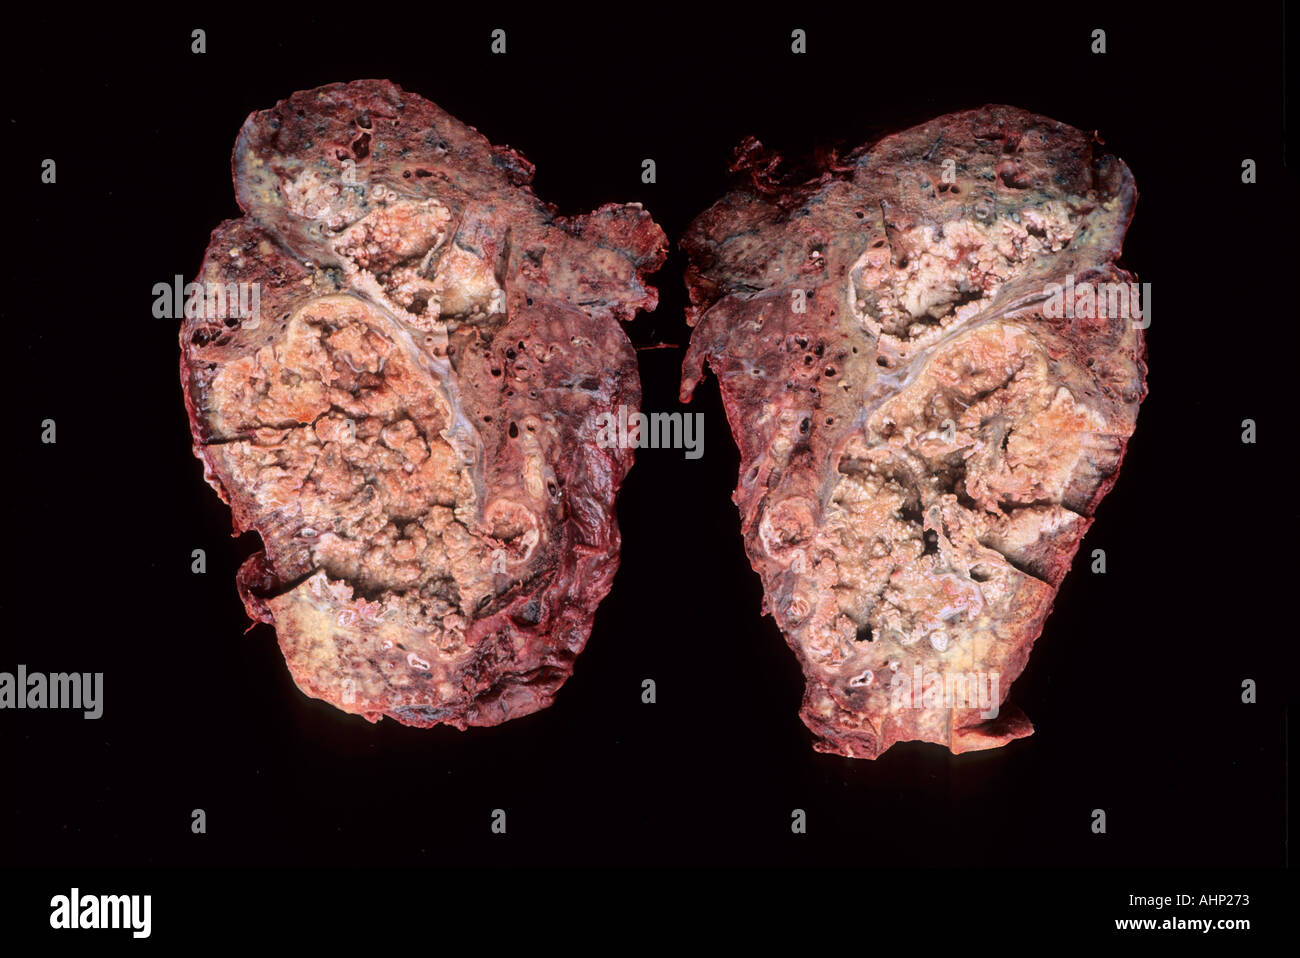 Carcinoma of the lung - Stock Image